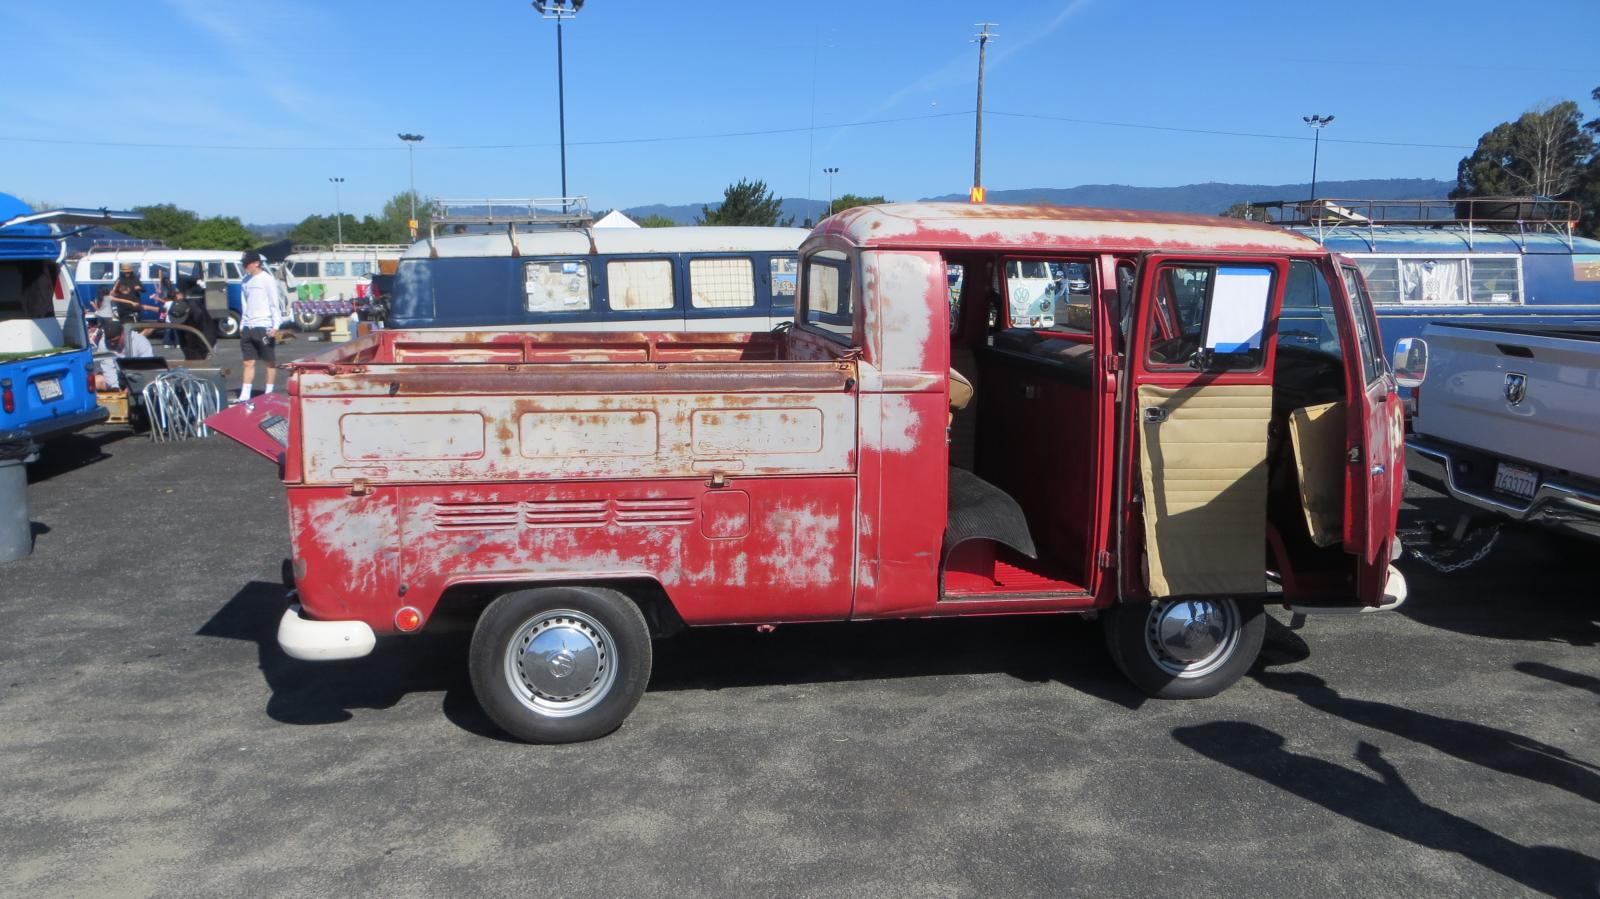 Bay Double-Cab from Red Barn 2019 (Sat. April 13th, 2019)